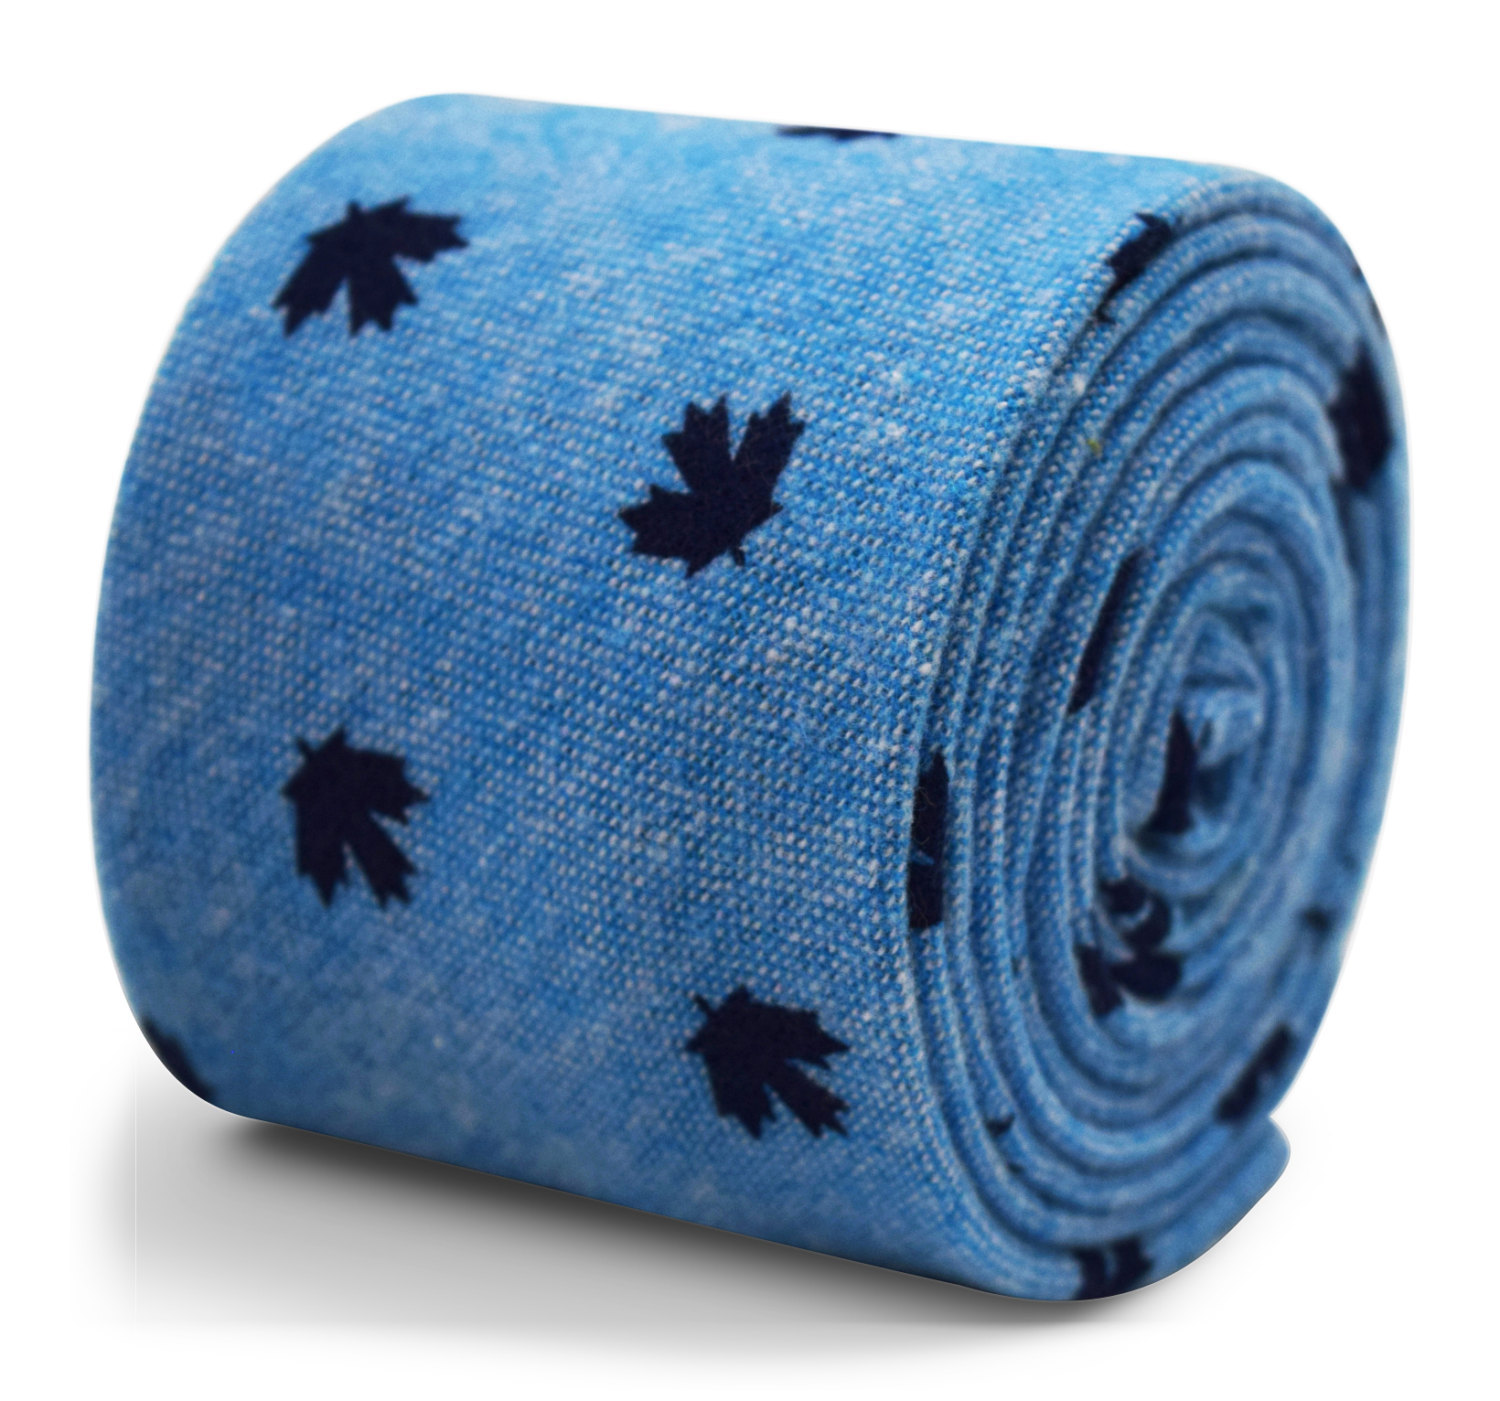 Frederick Thomas 100% cotton tie in light blue with Canadian maple leaf pattern